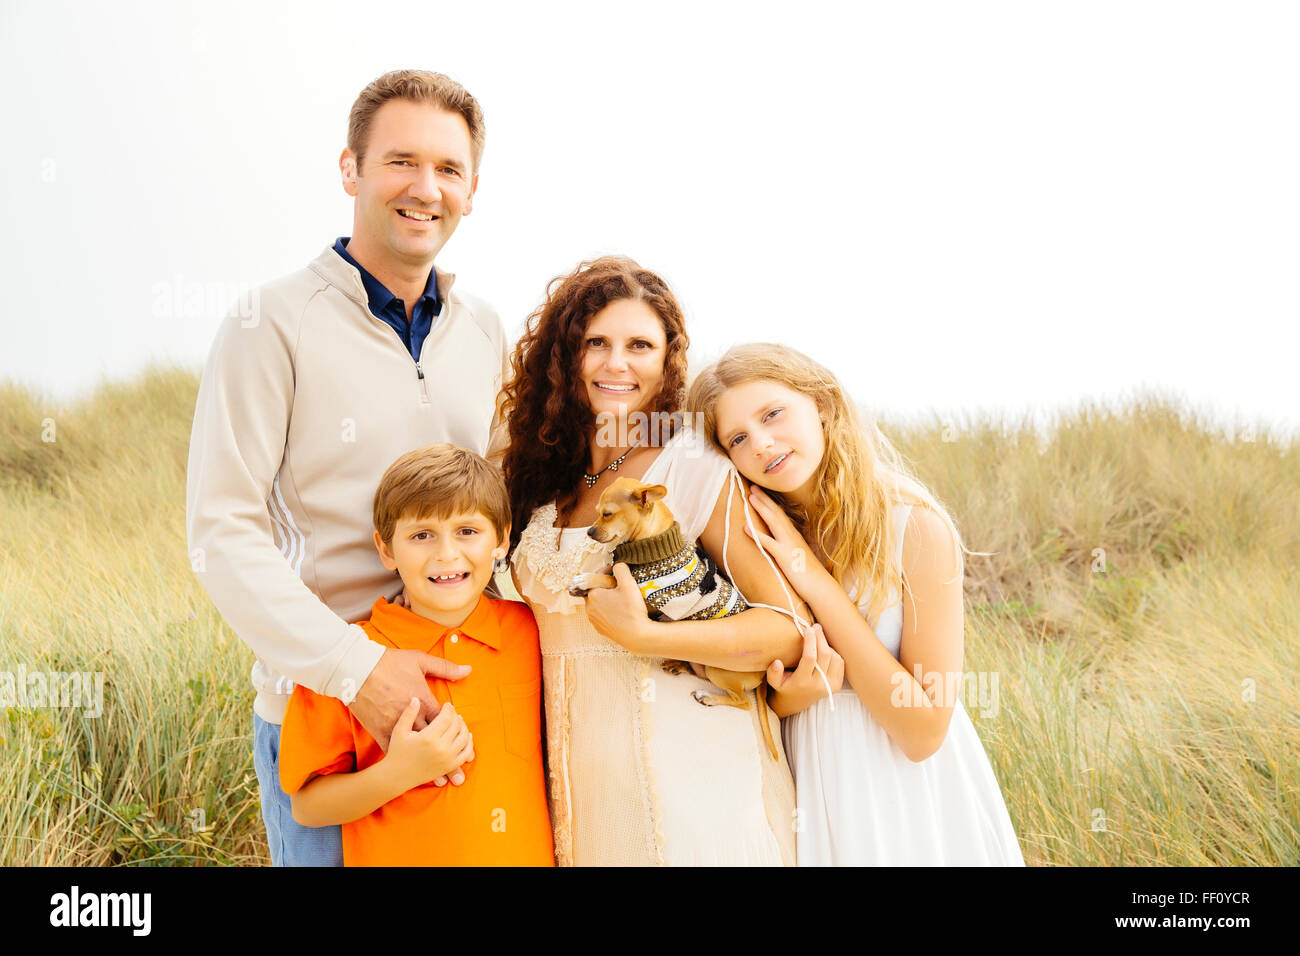 Family smiling with dog on beach Stock Photo